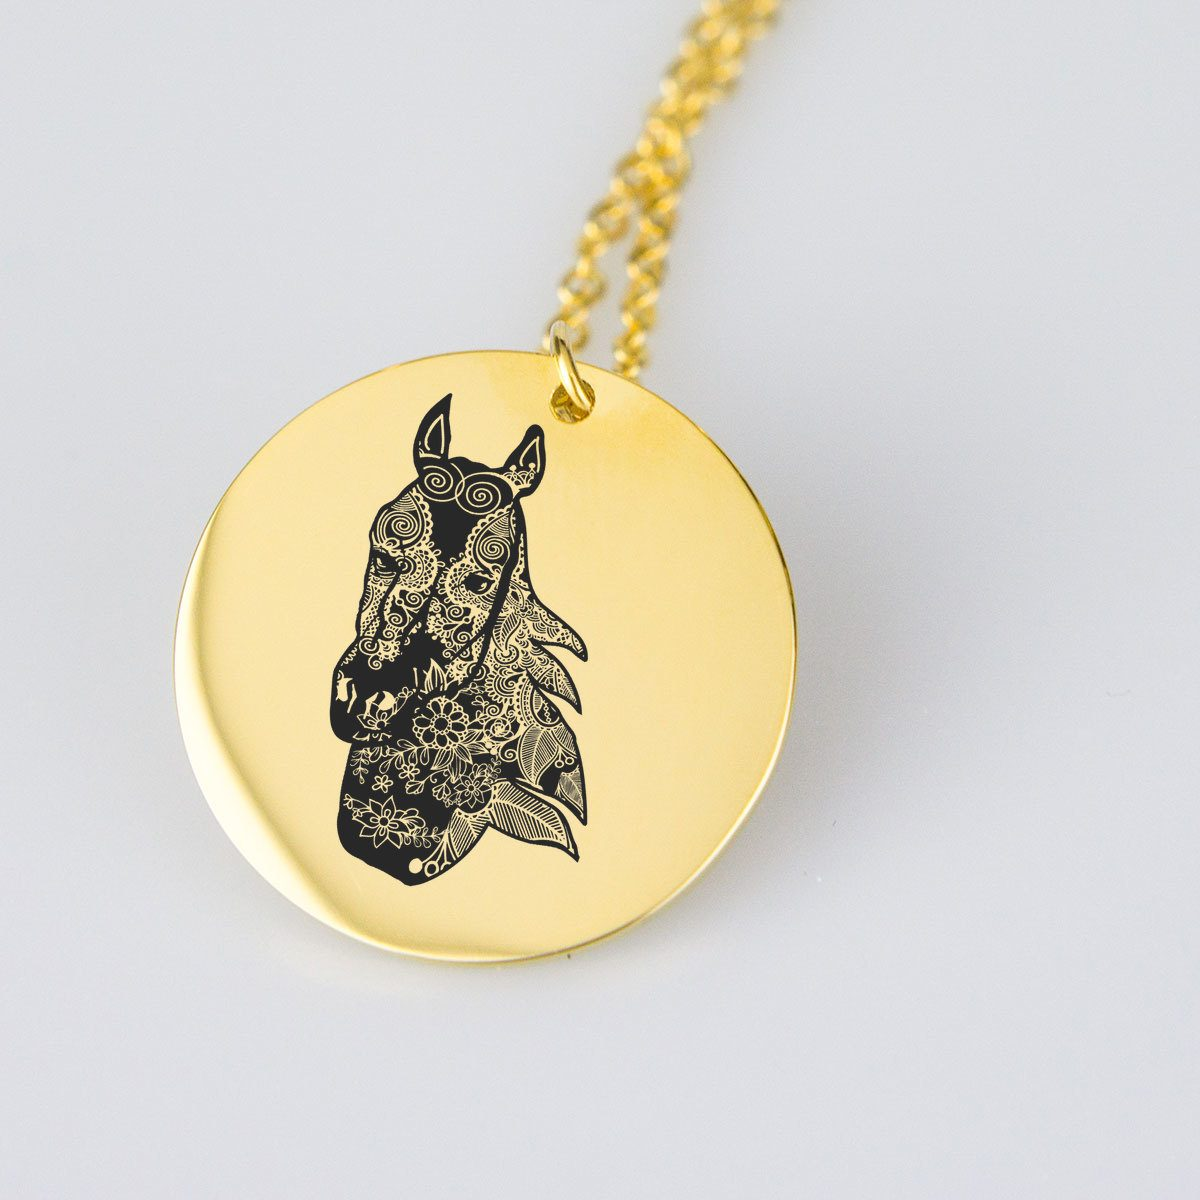 Horse Silhouette Charm Necklace